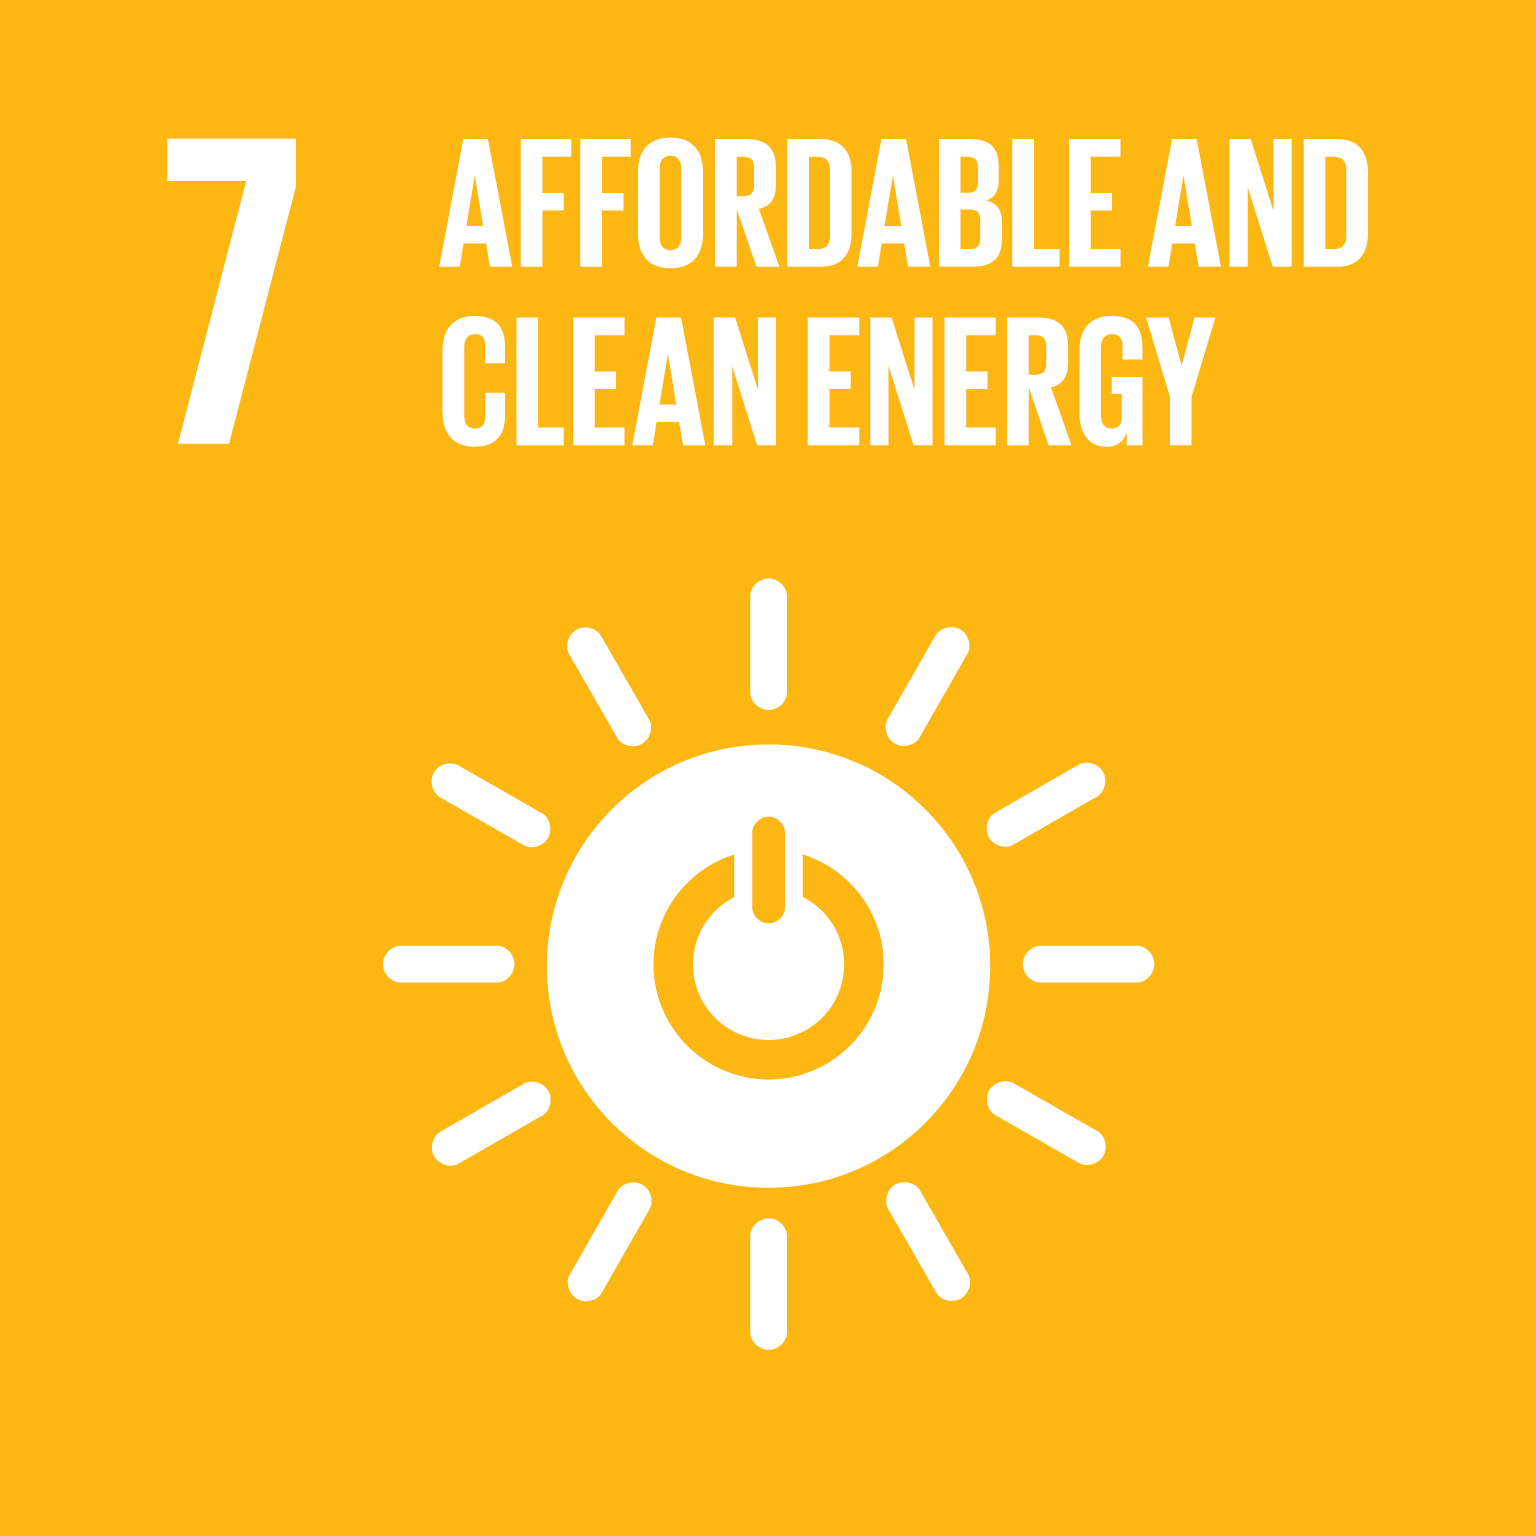 affordable and clean energy icon